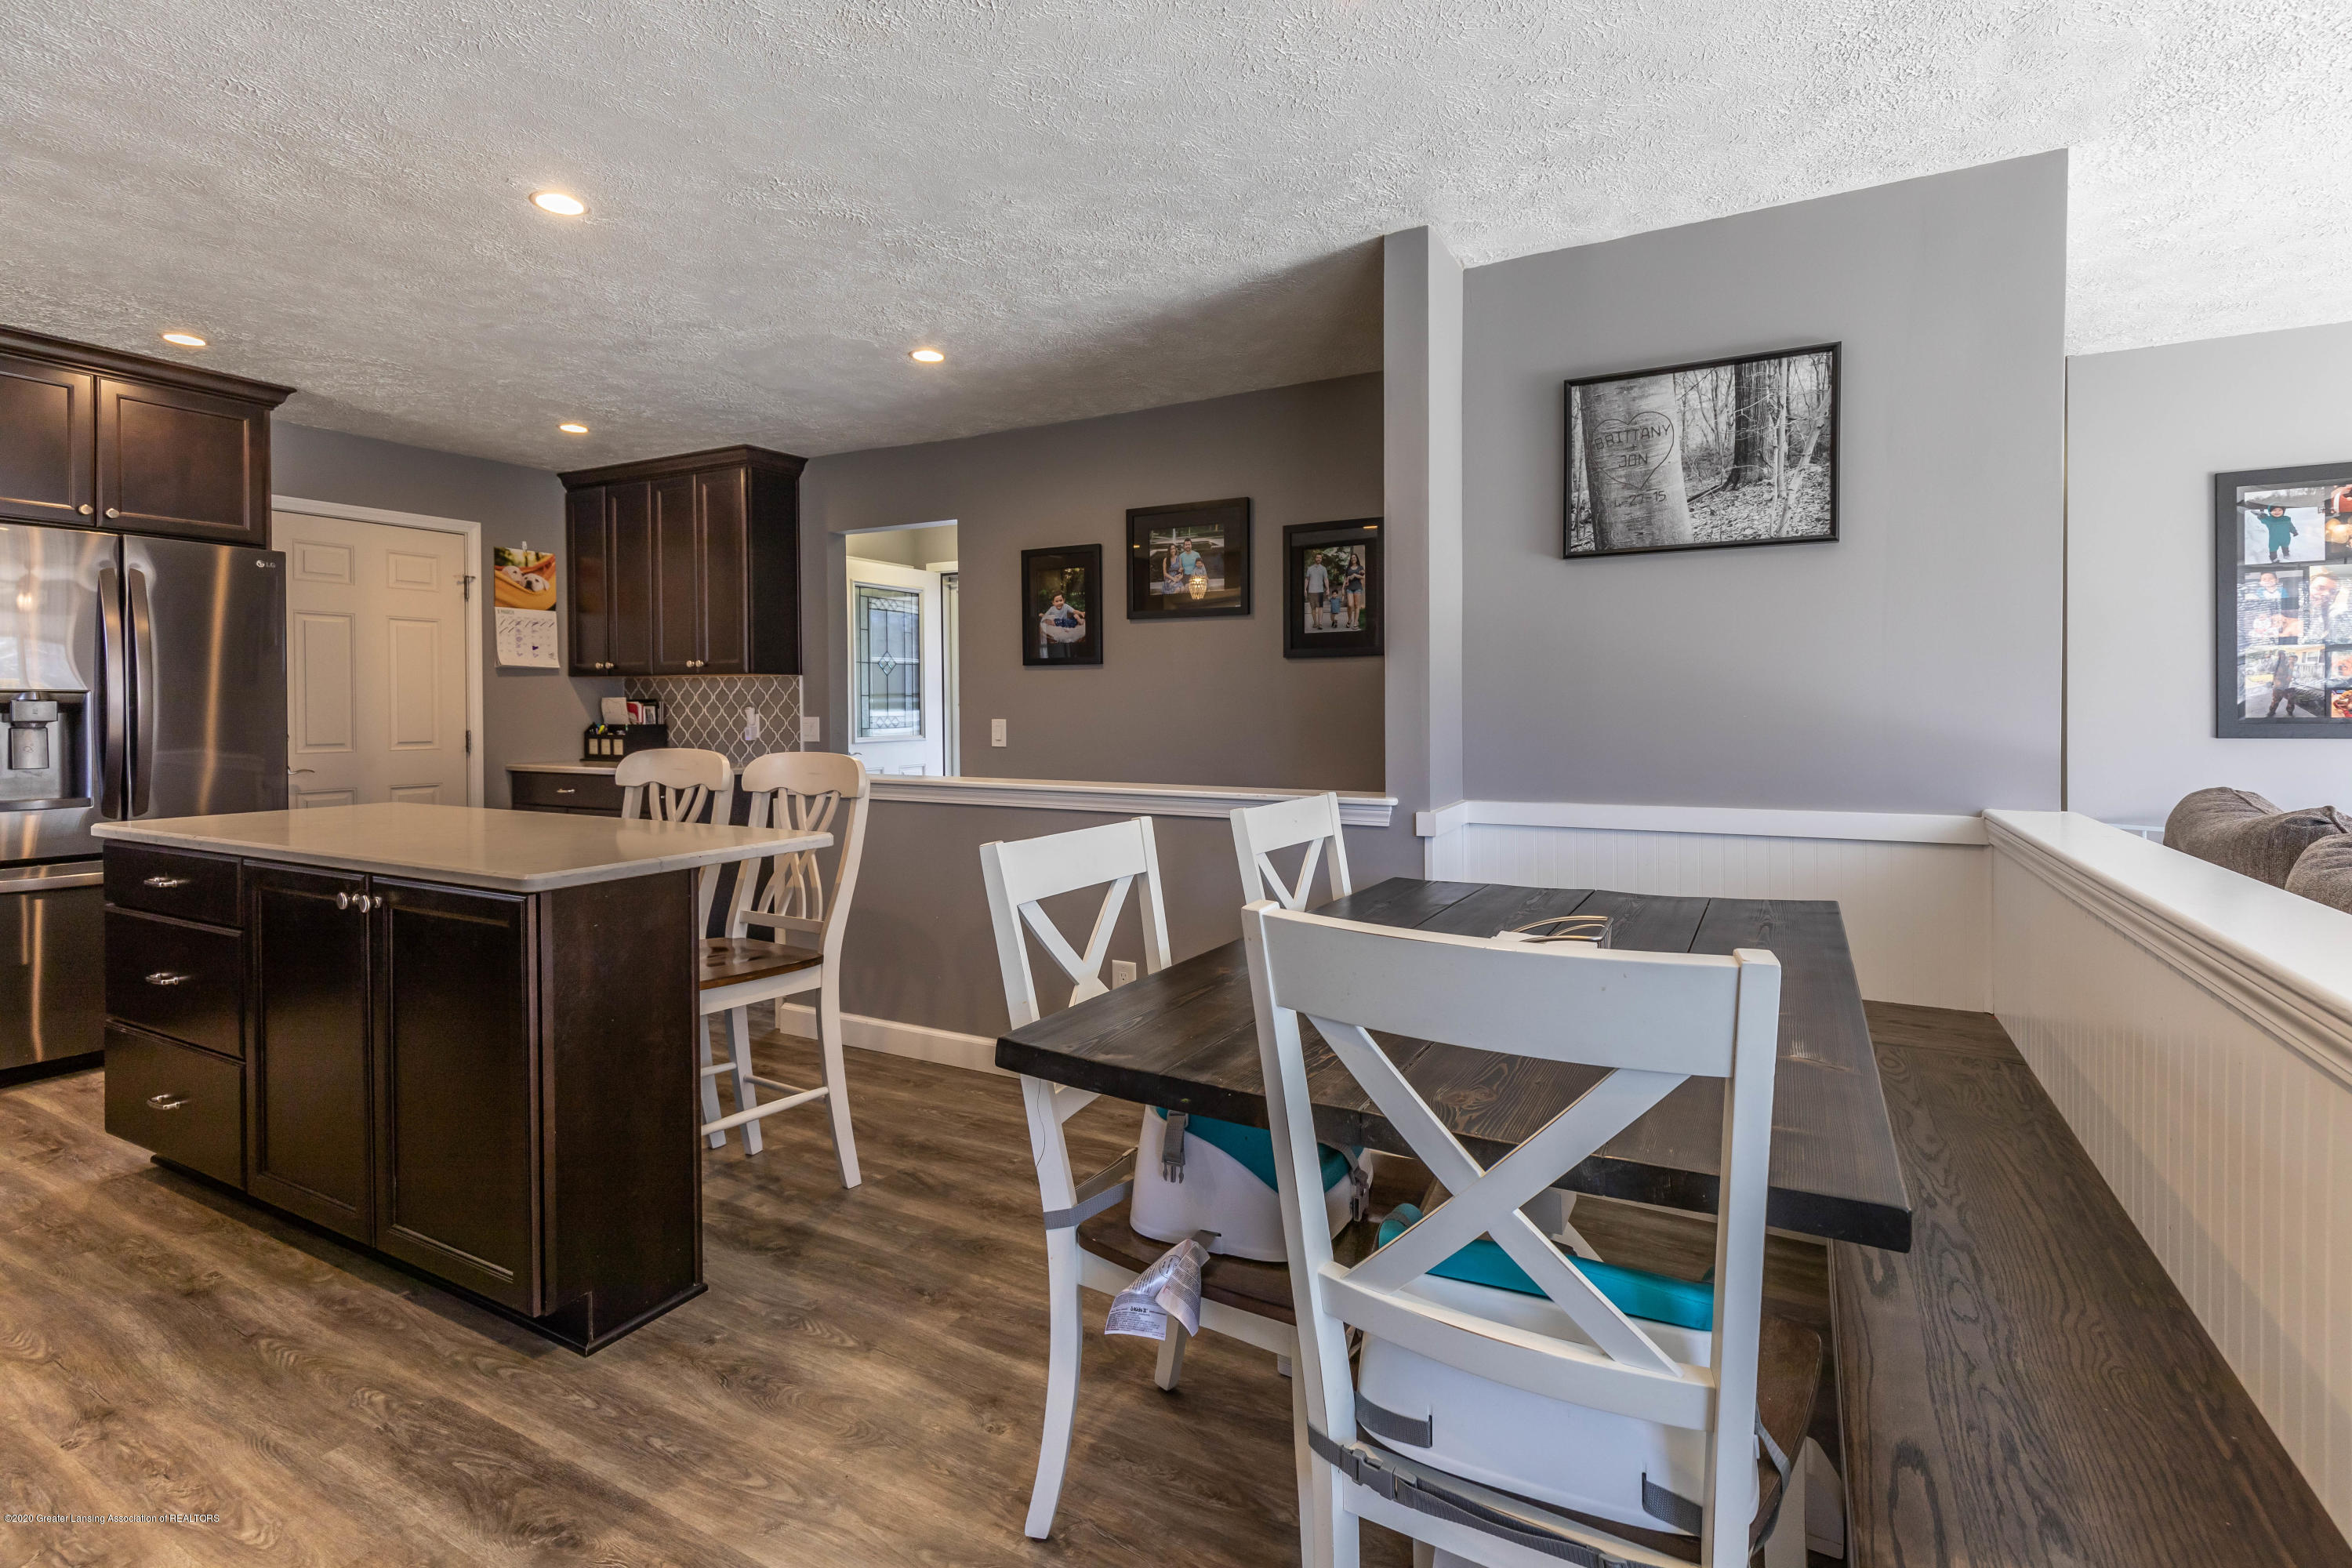 13346 Wood Rd - Dining - 11